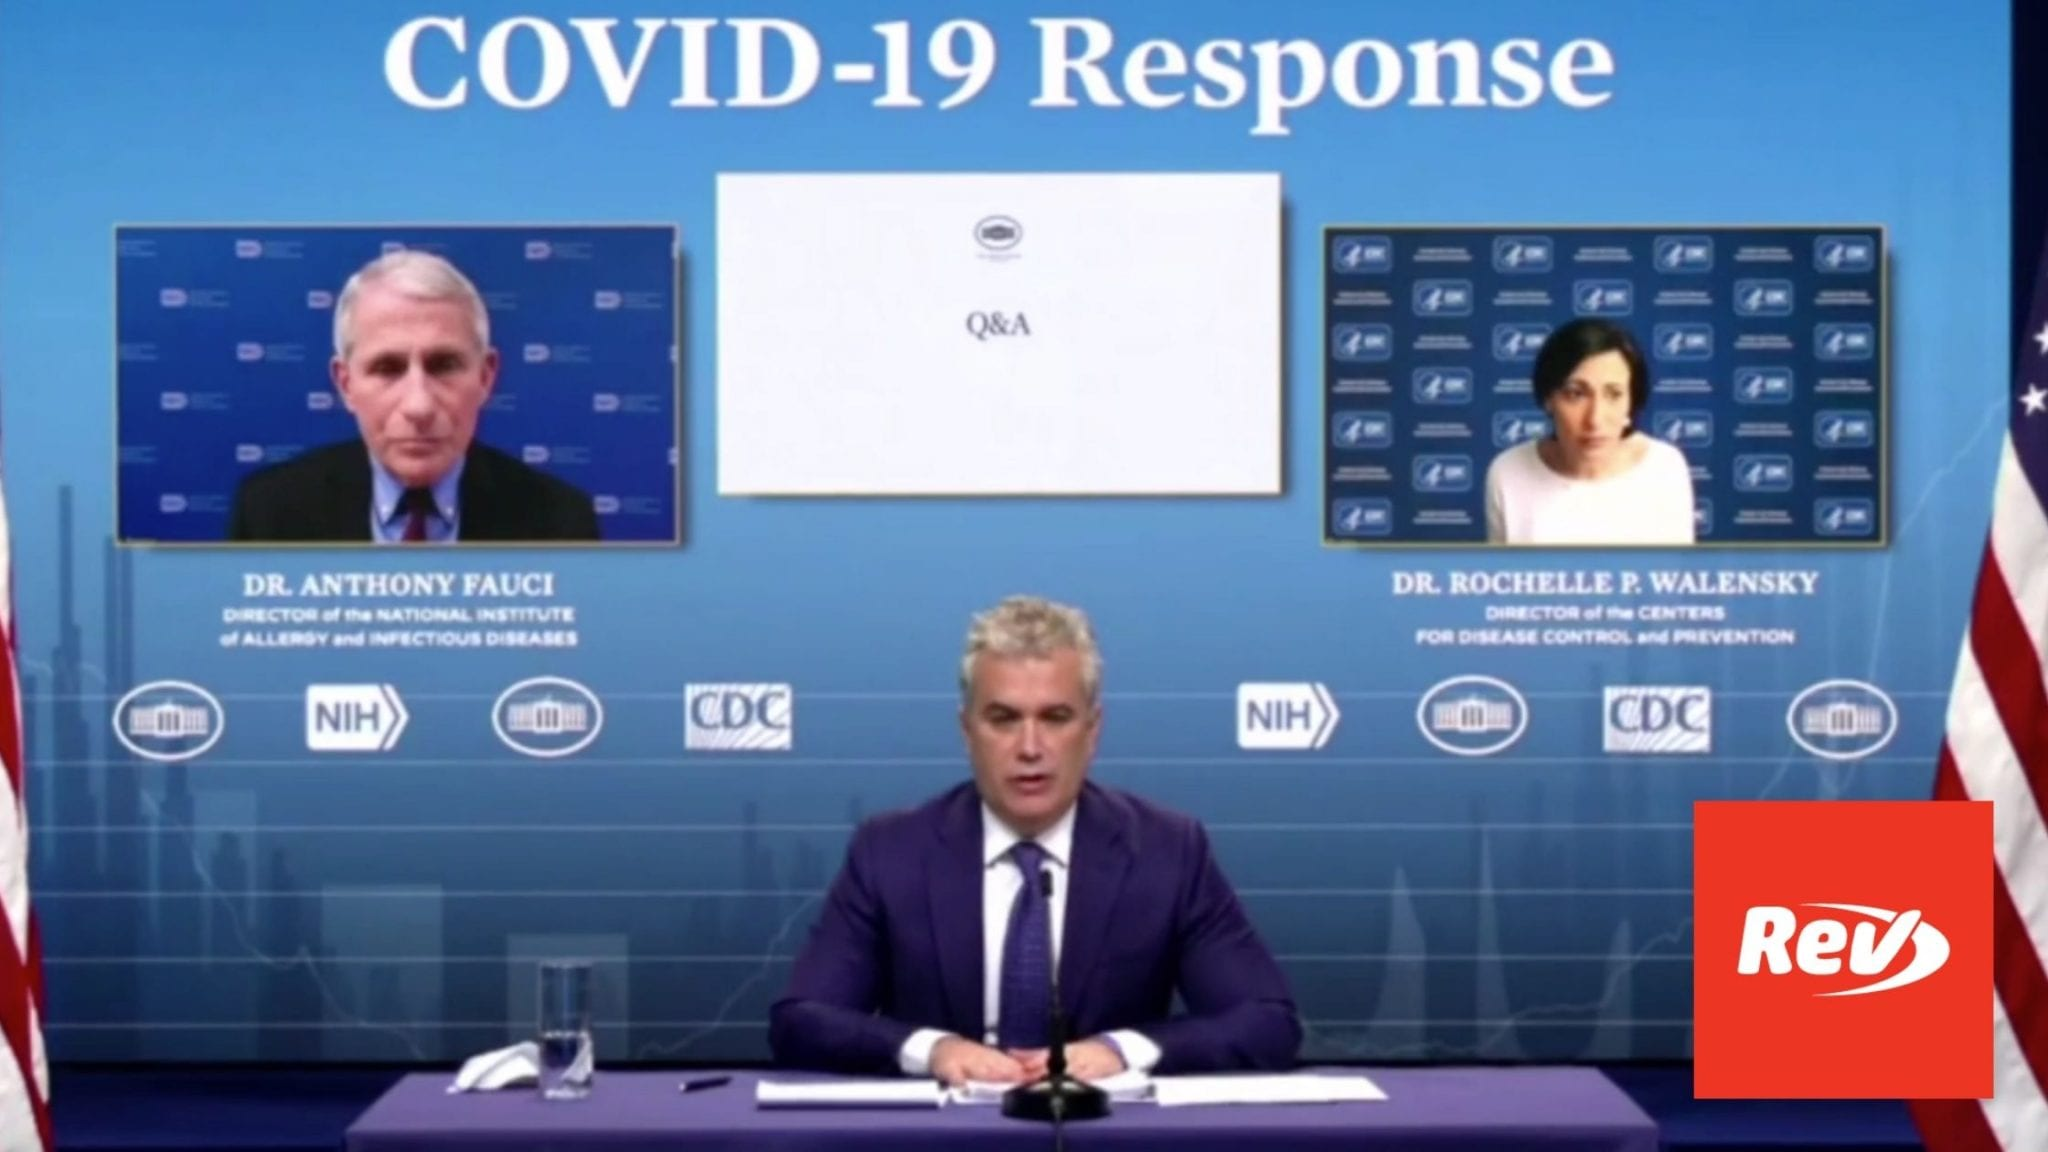 White House COVID-19 Response Team, Dr. Fauci Press Conference Transcript February 3